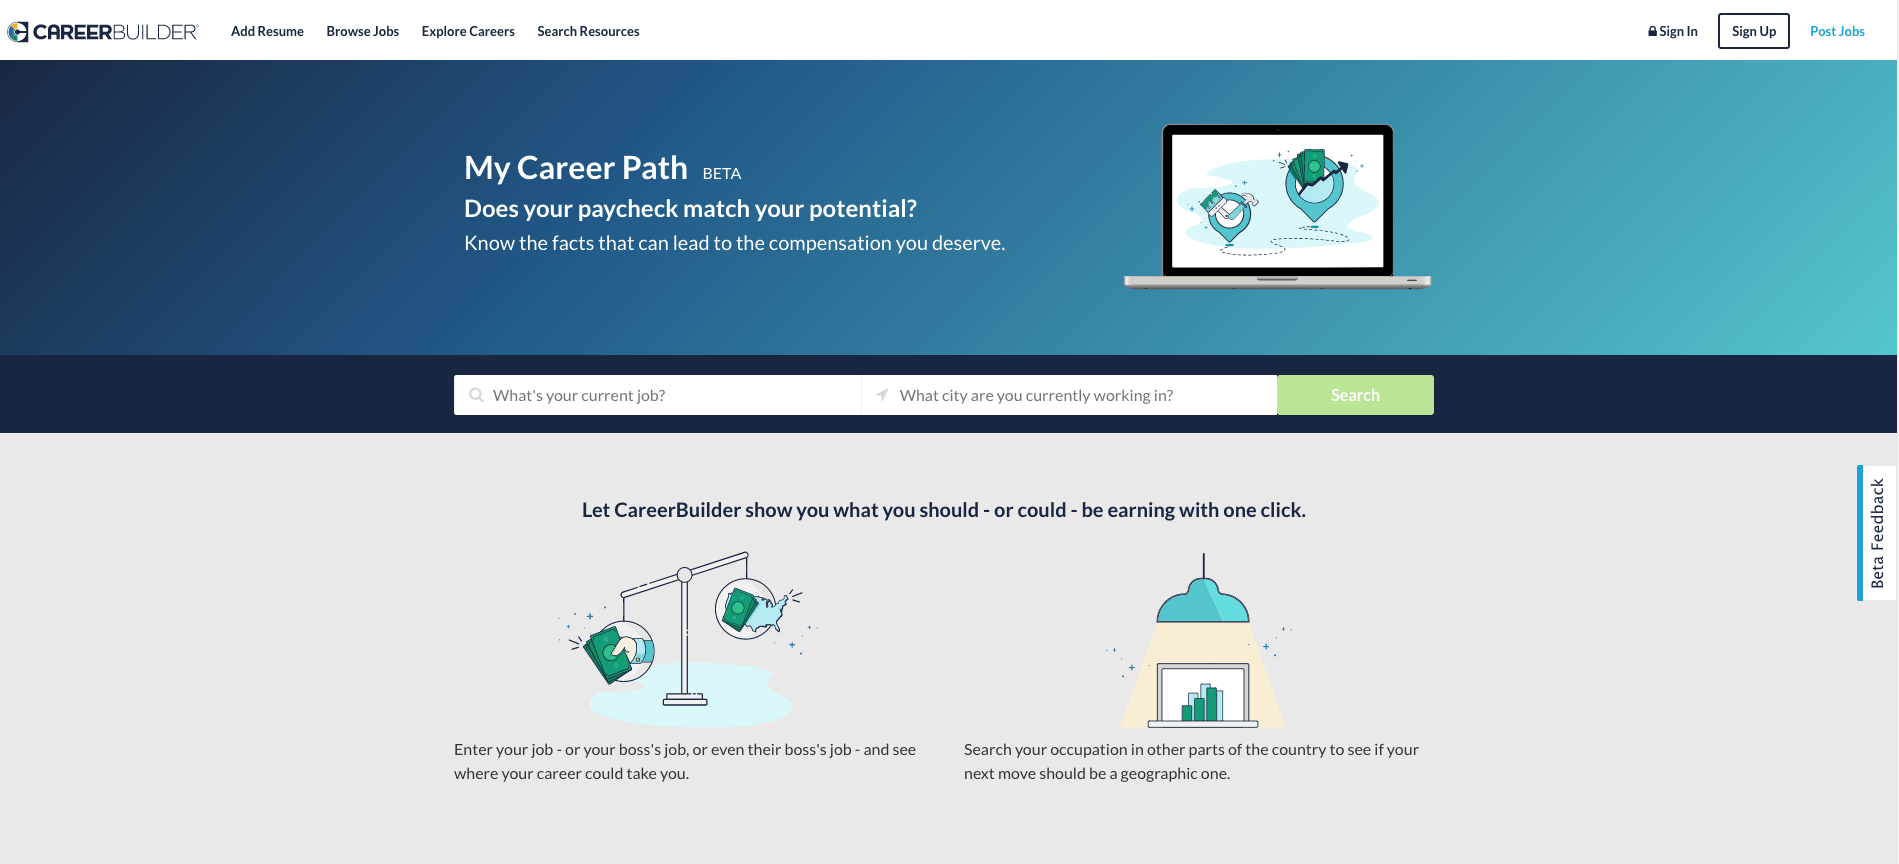 Screenshot from CareerBuilder website